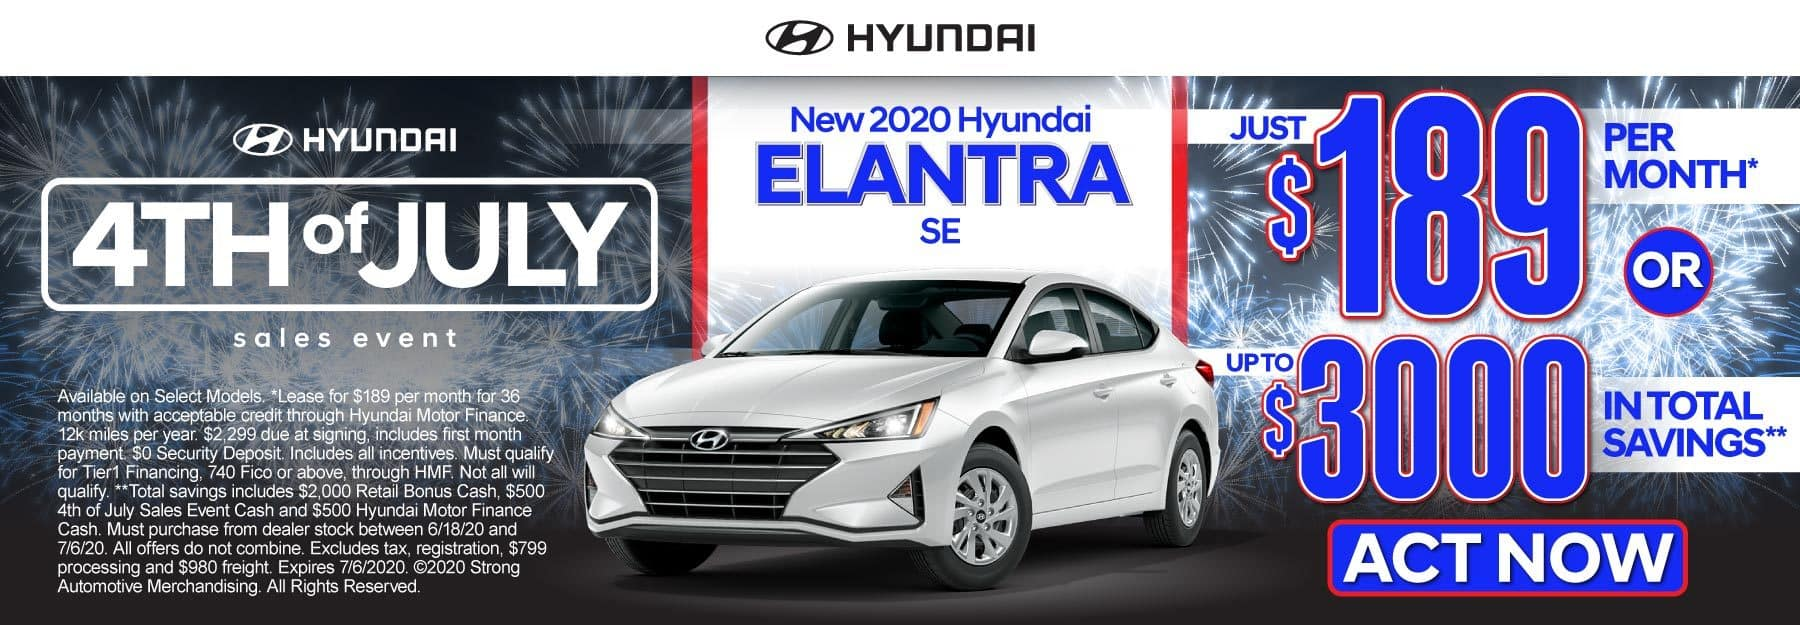 New 2020 Hyundai Elantra - Just $189 per month or up to $3000 in total savings - Click to View Inventory